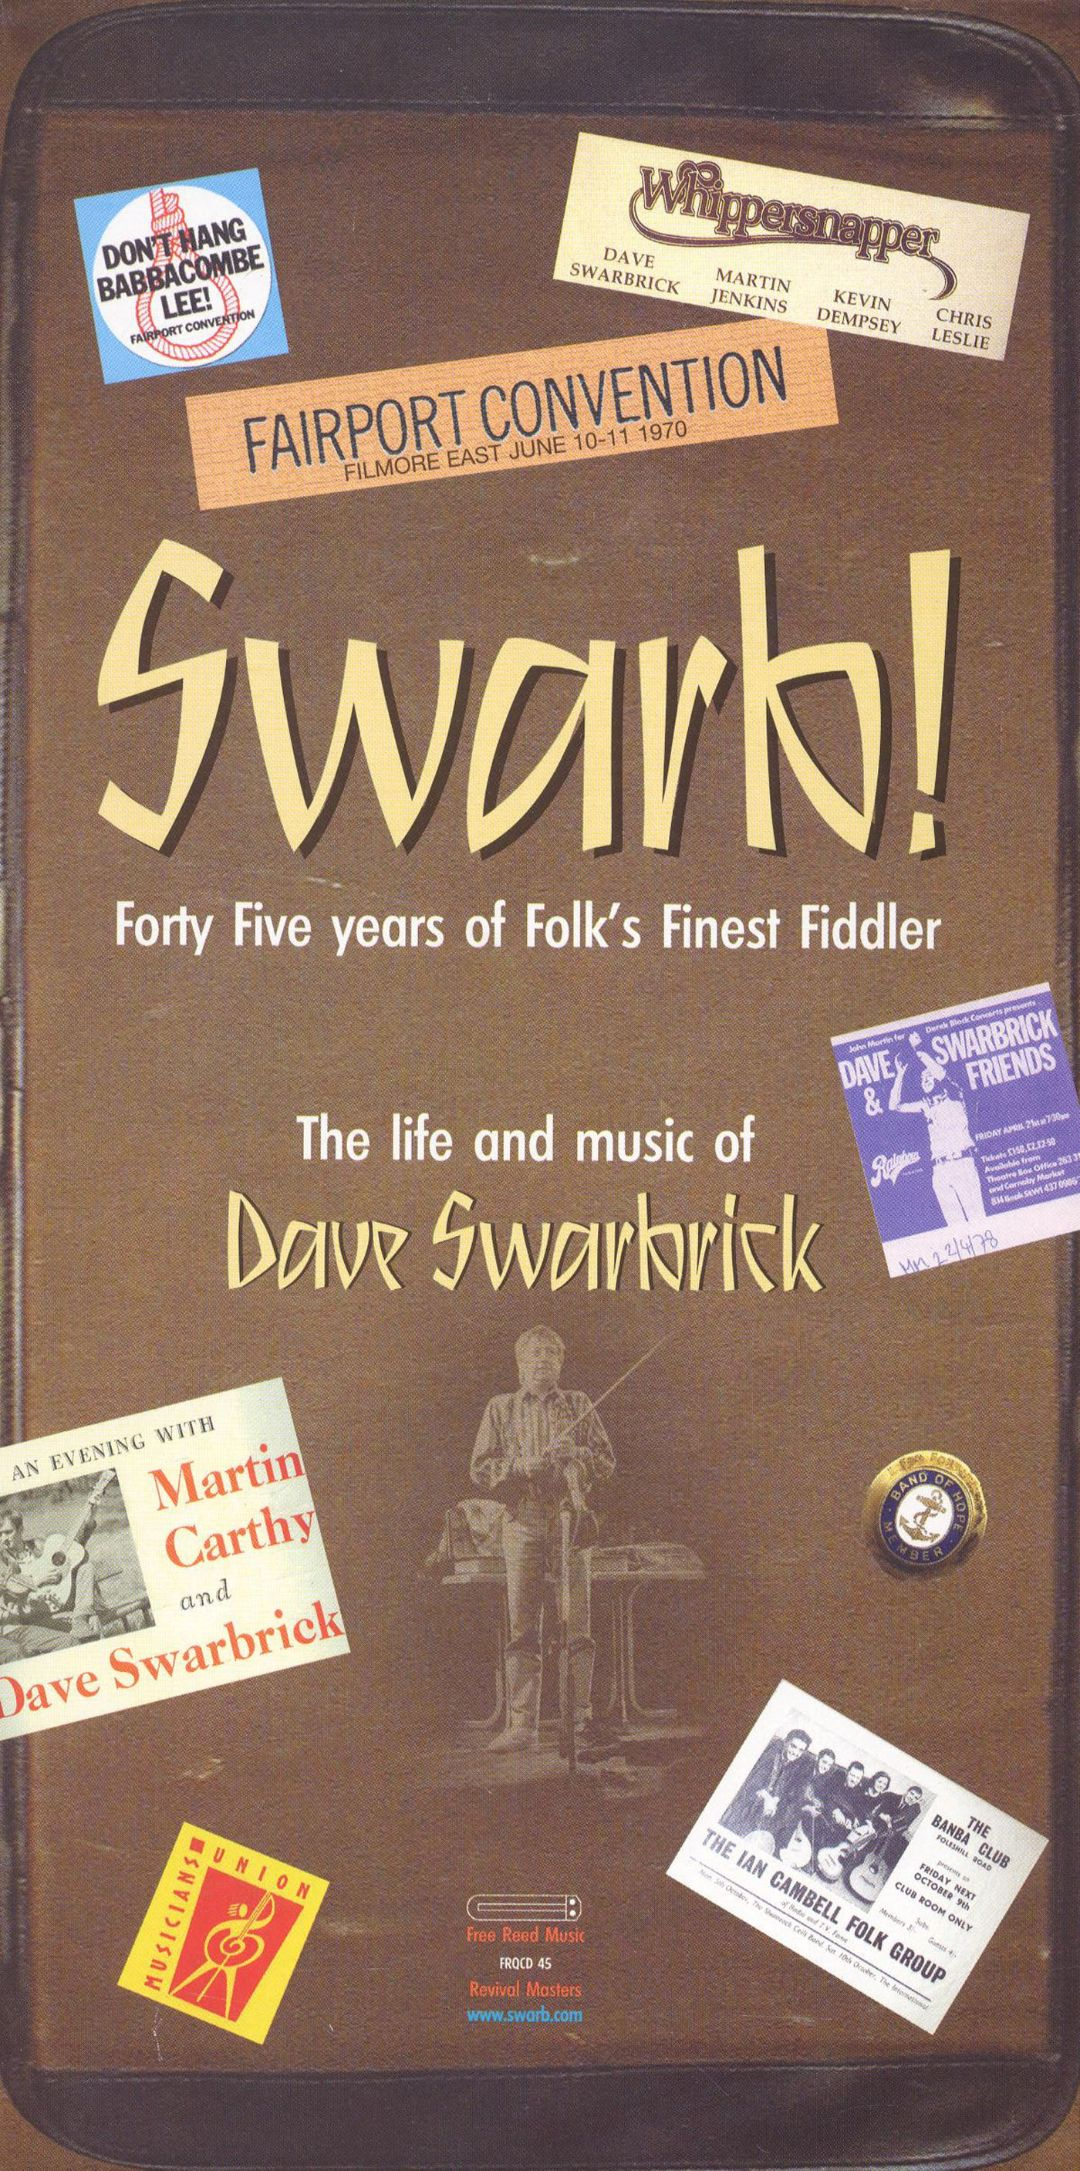 Image result for Dave Swarbrick box set